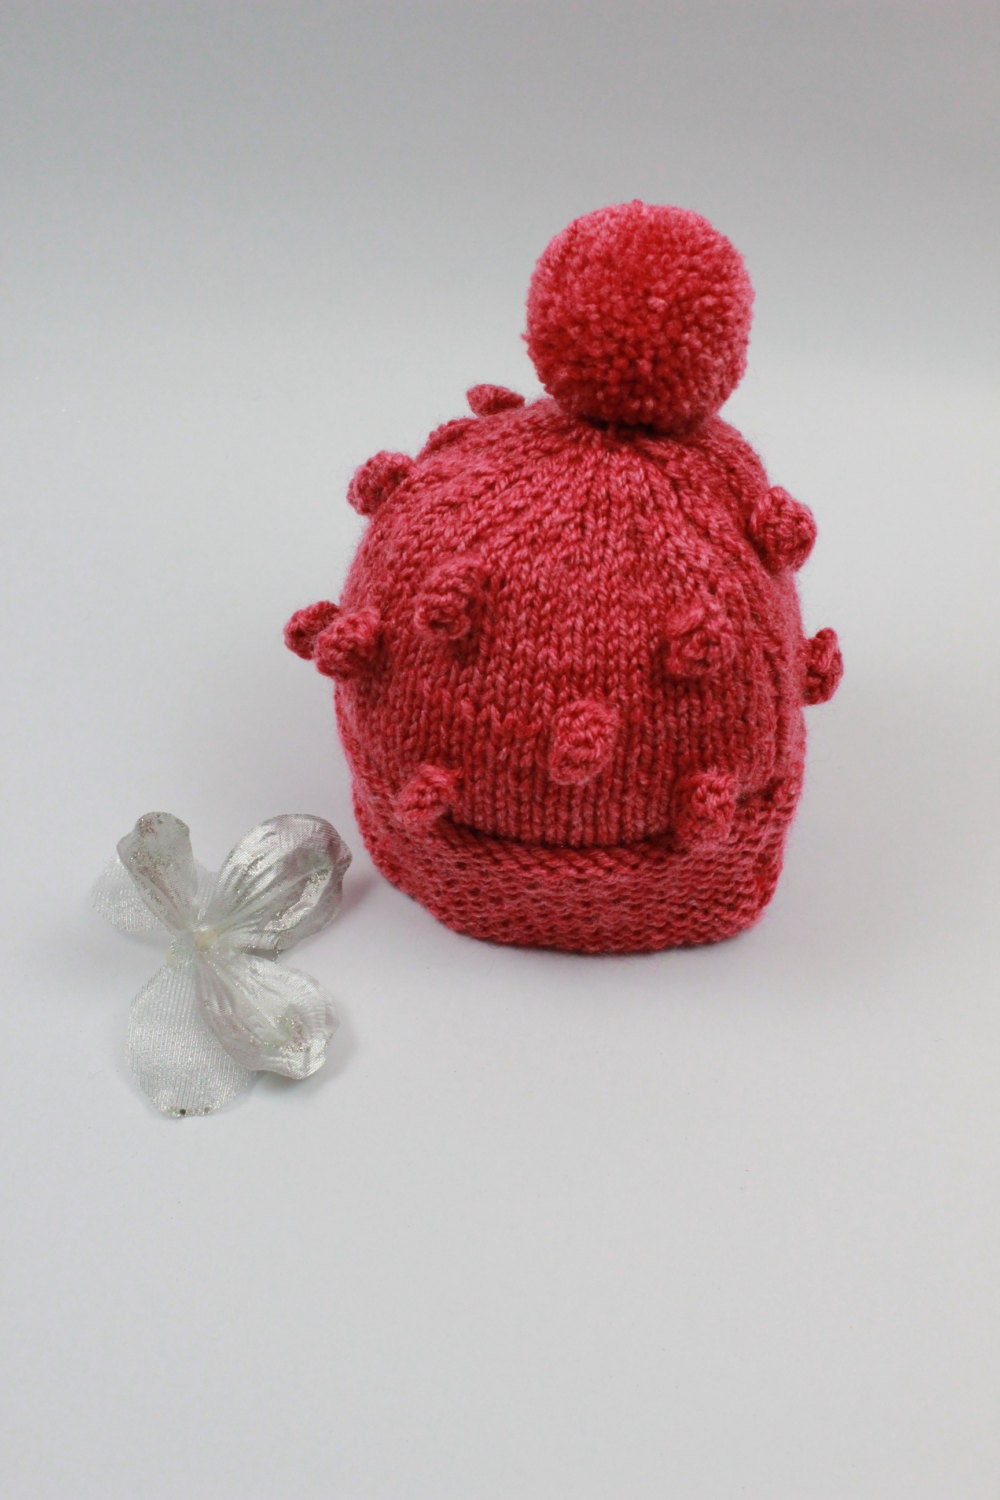 KNITTING PATTERN For Bobble Hat Beanie in 2 Sizes PDF 128h